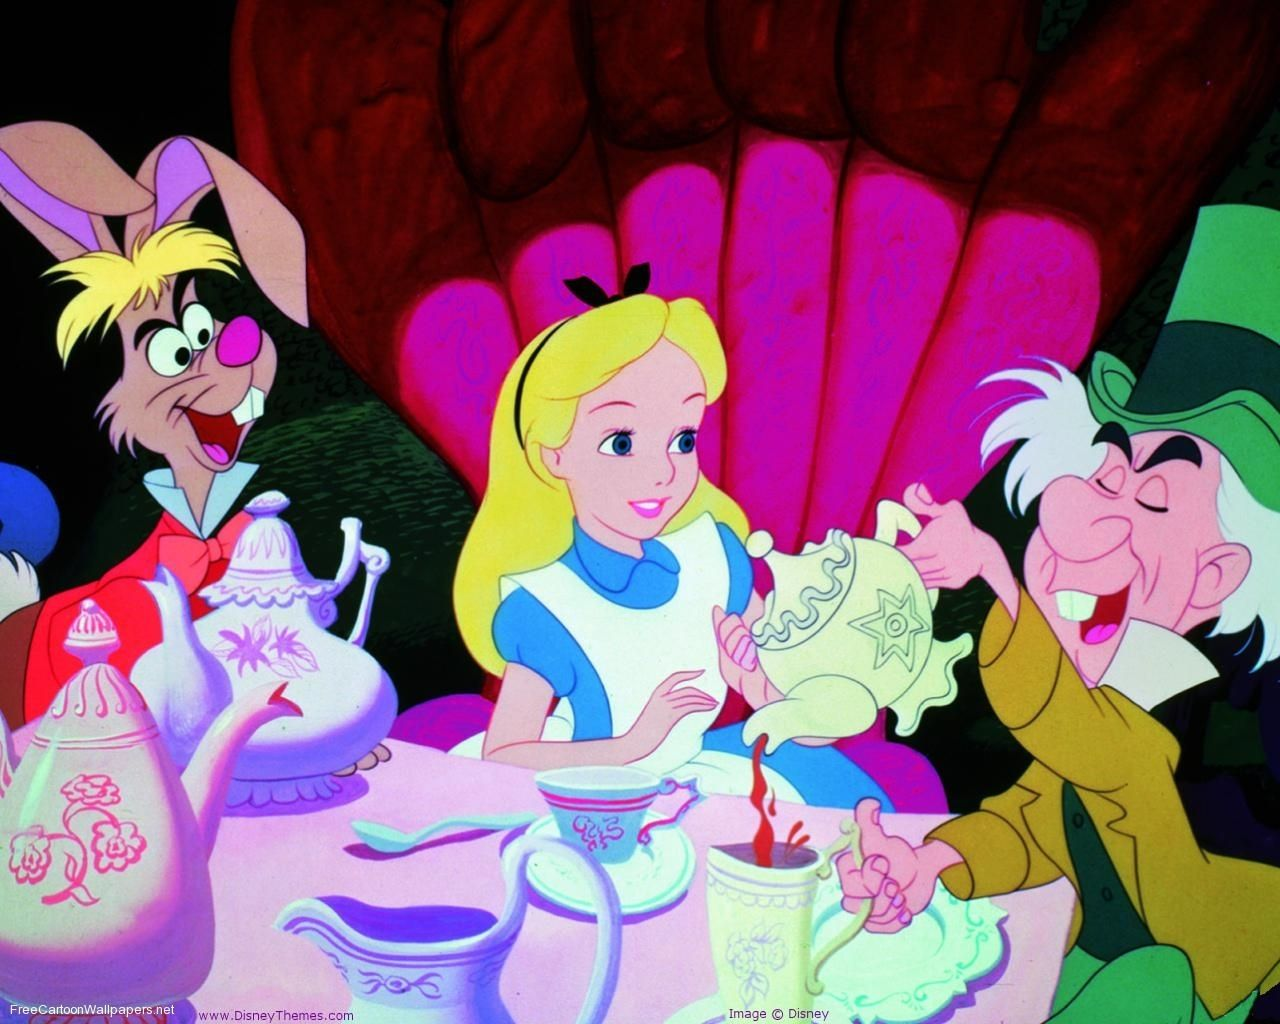 D23 Announces Adventure In Wonderland Event For Gold Members At